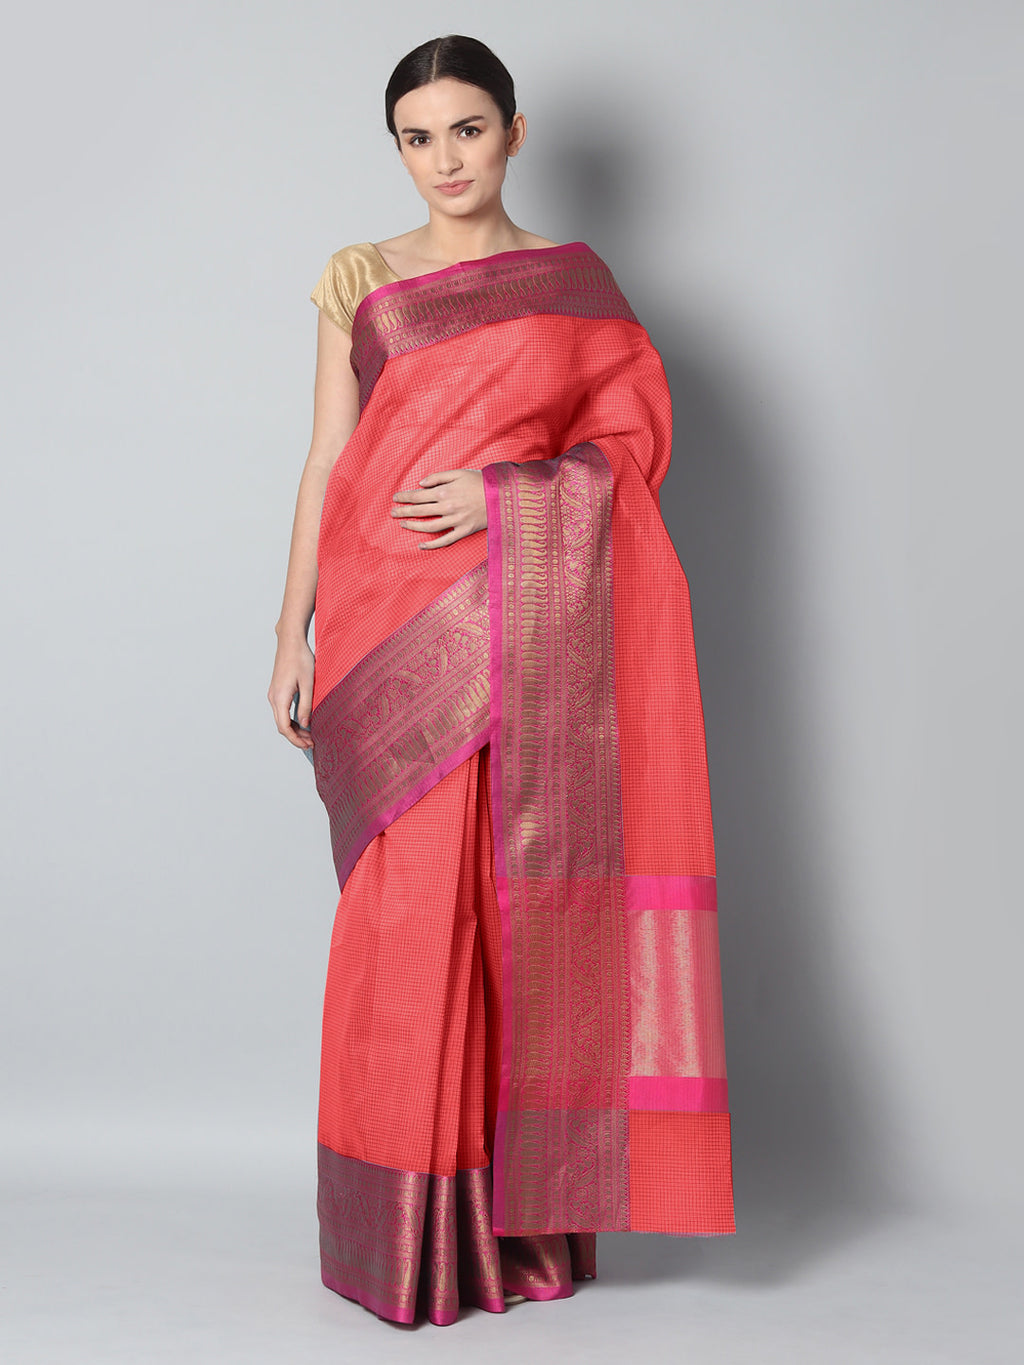 Red chanderi saree with small checks and contrasting meenakari border